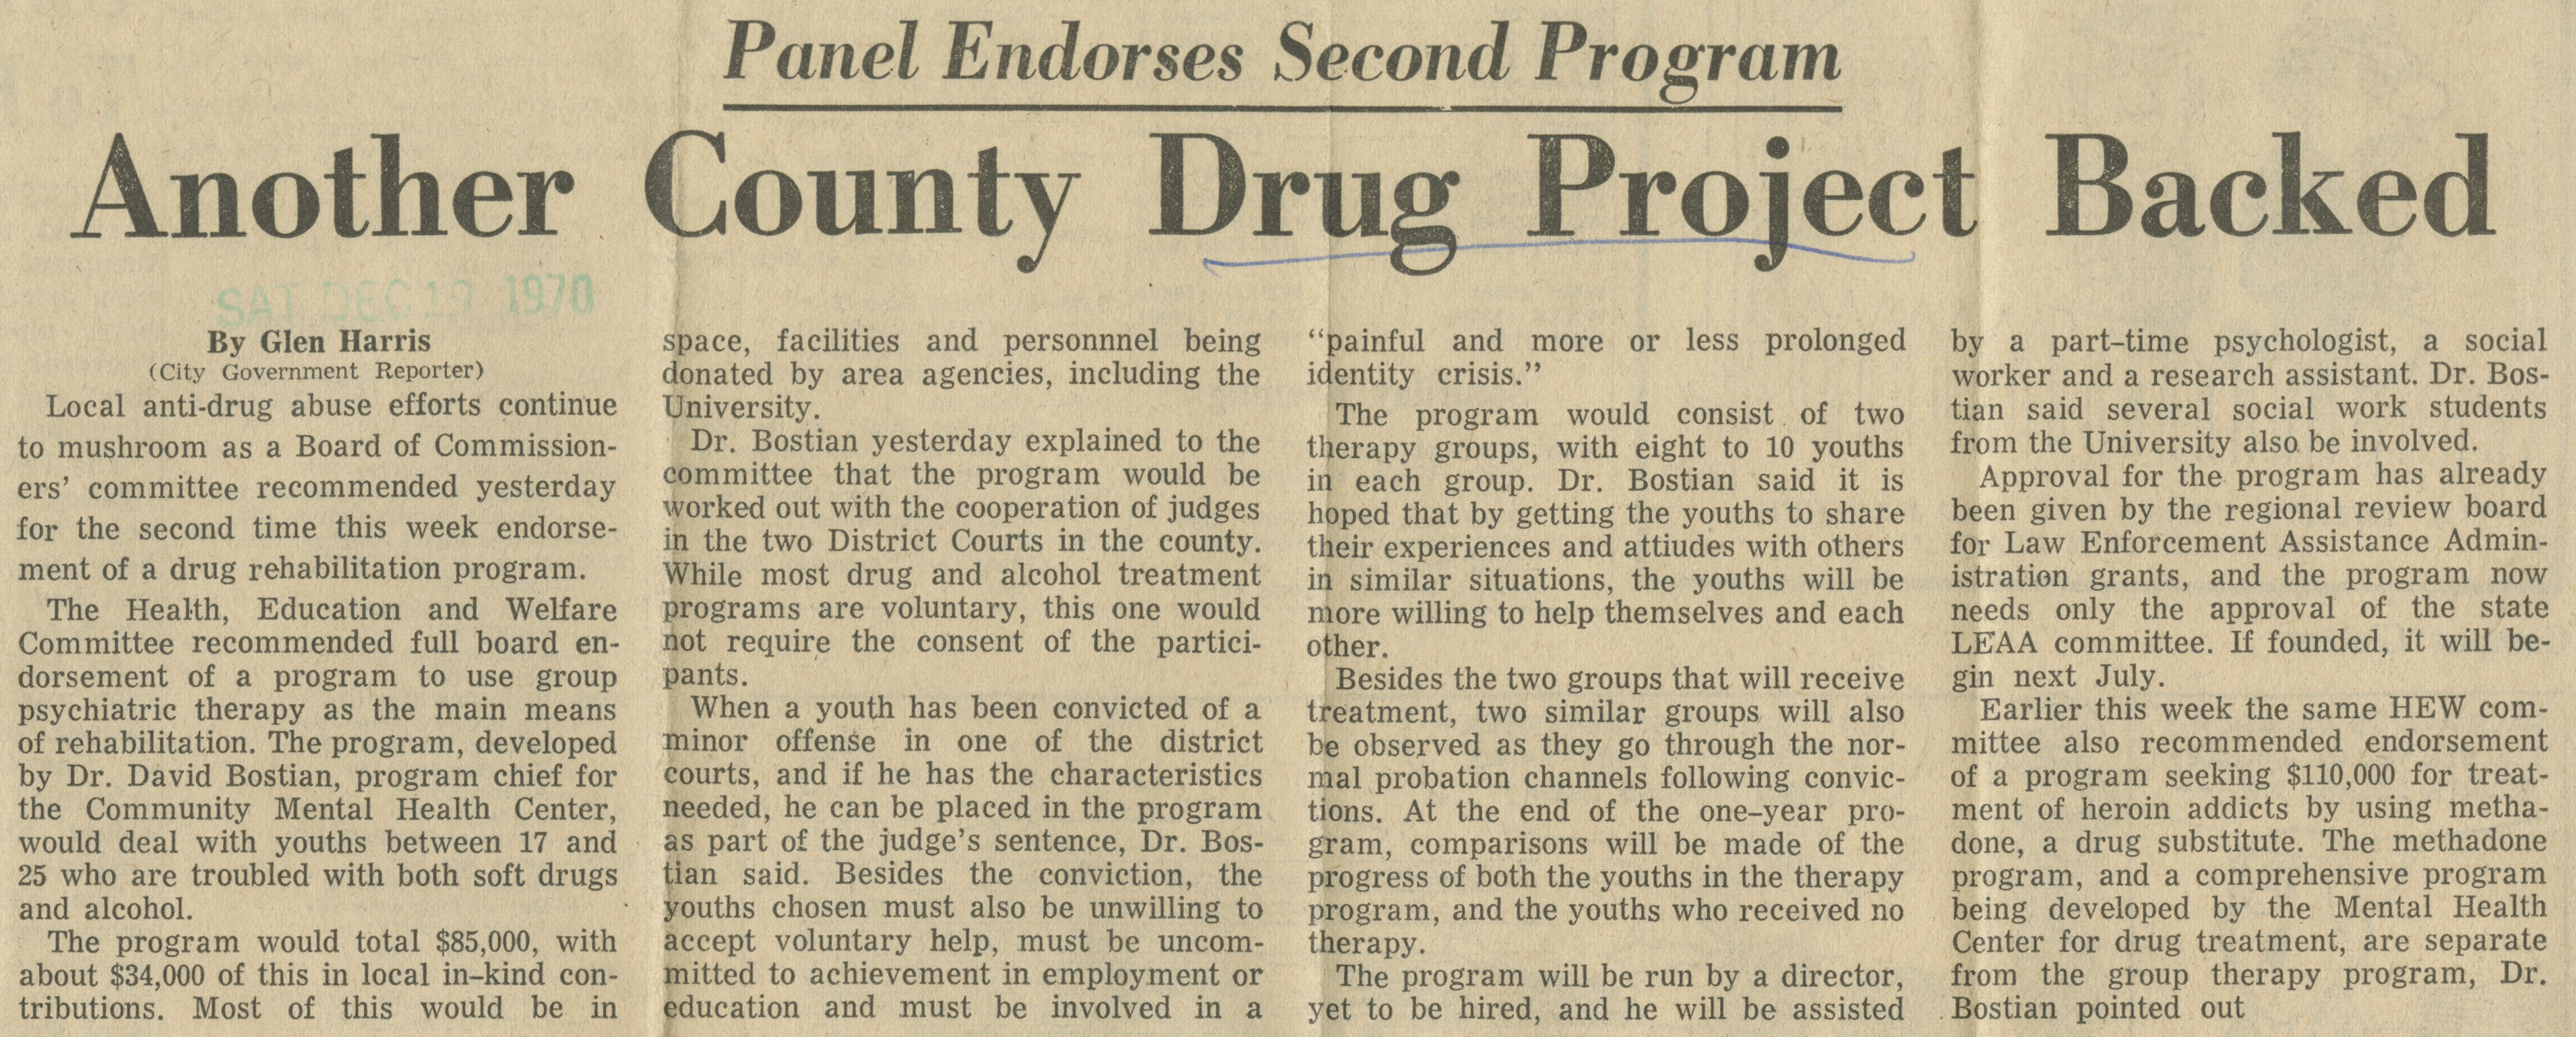 Another County Drug Project Backed  image